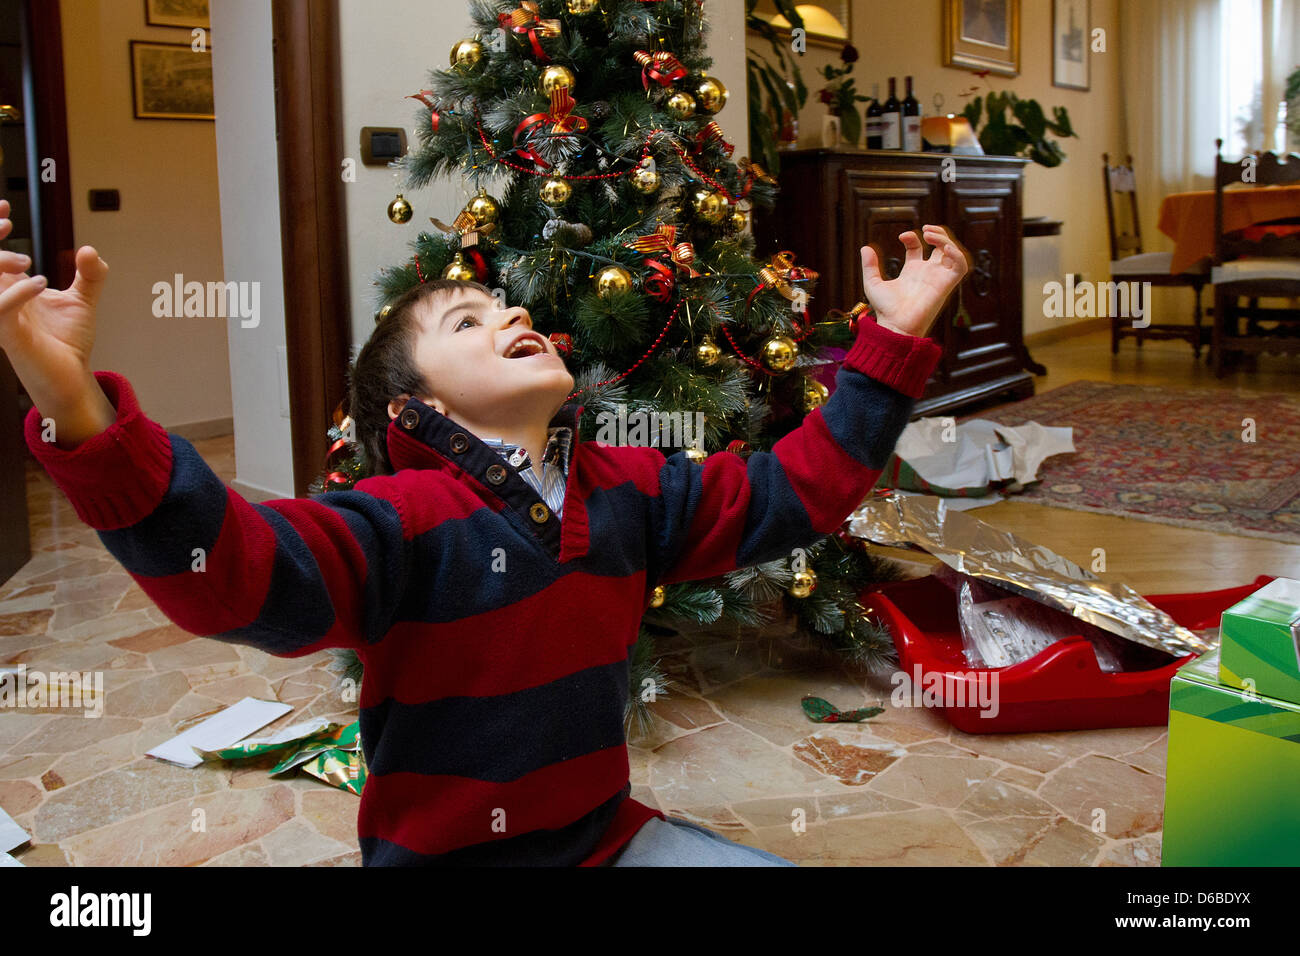 Boy cheering by Christmas tree - Stock Image